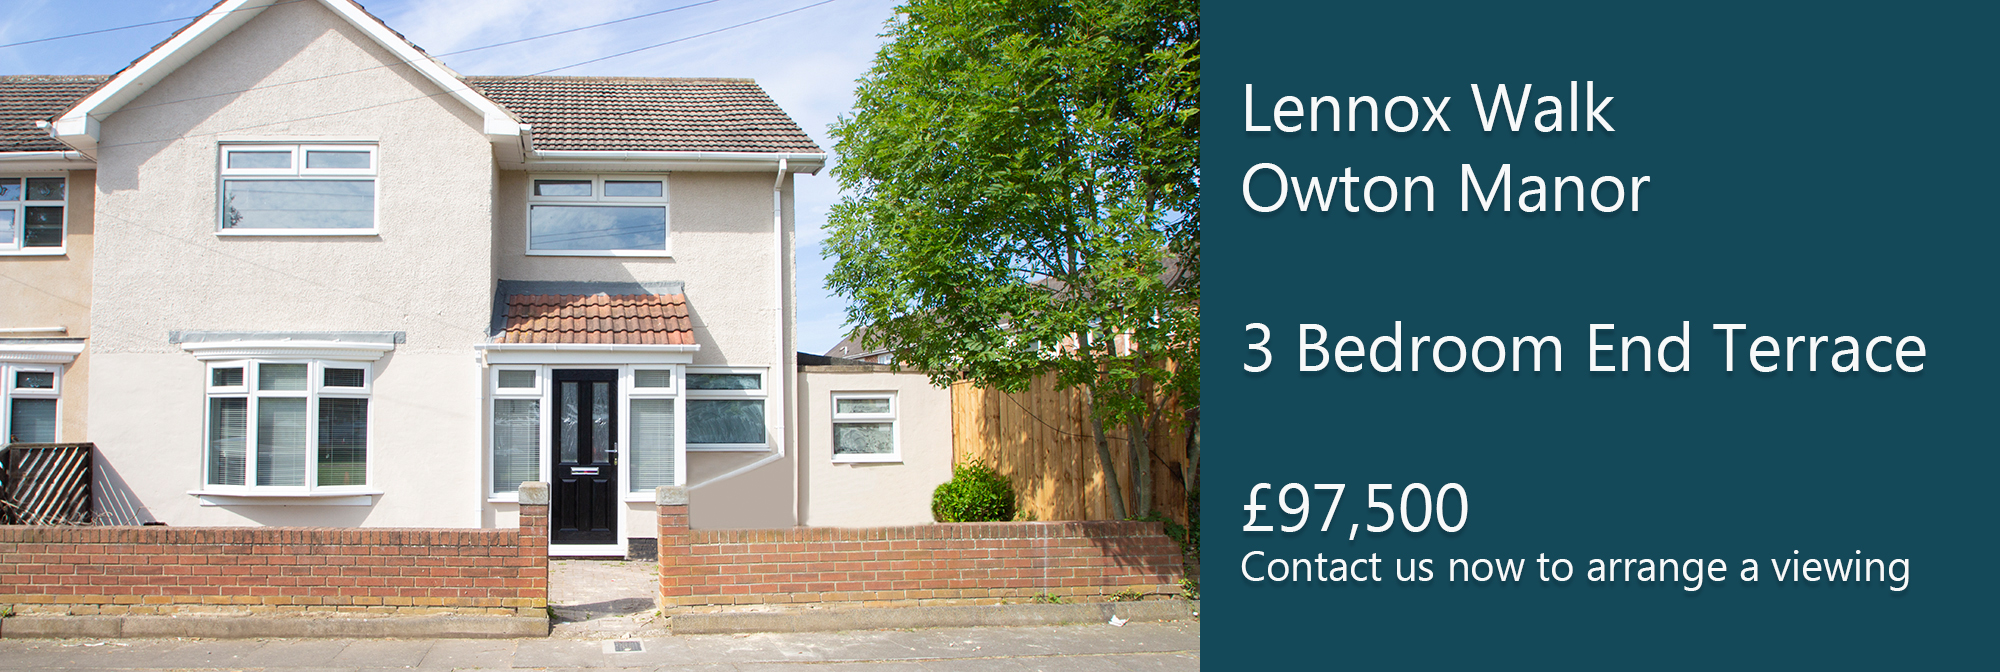 Lennox Walk Owton Manor Hartlepool £97,500 **UNDER OFFER**